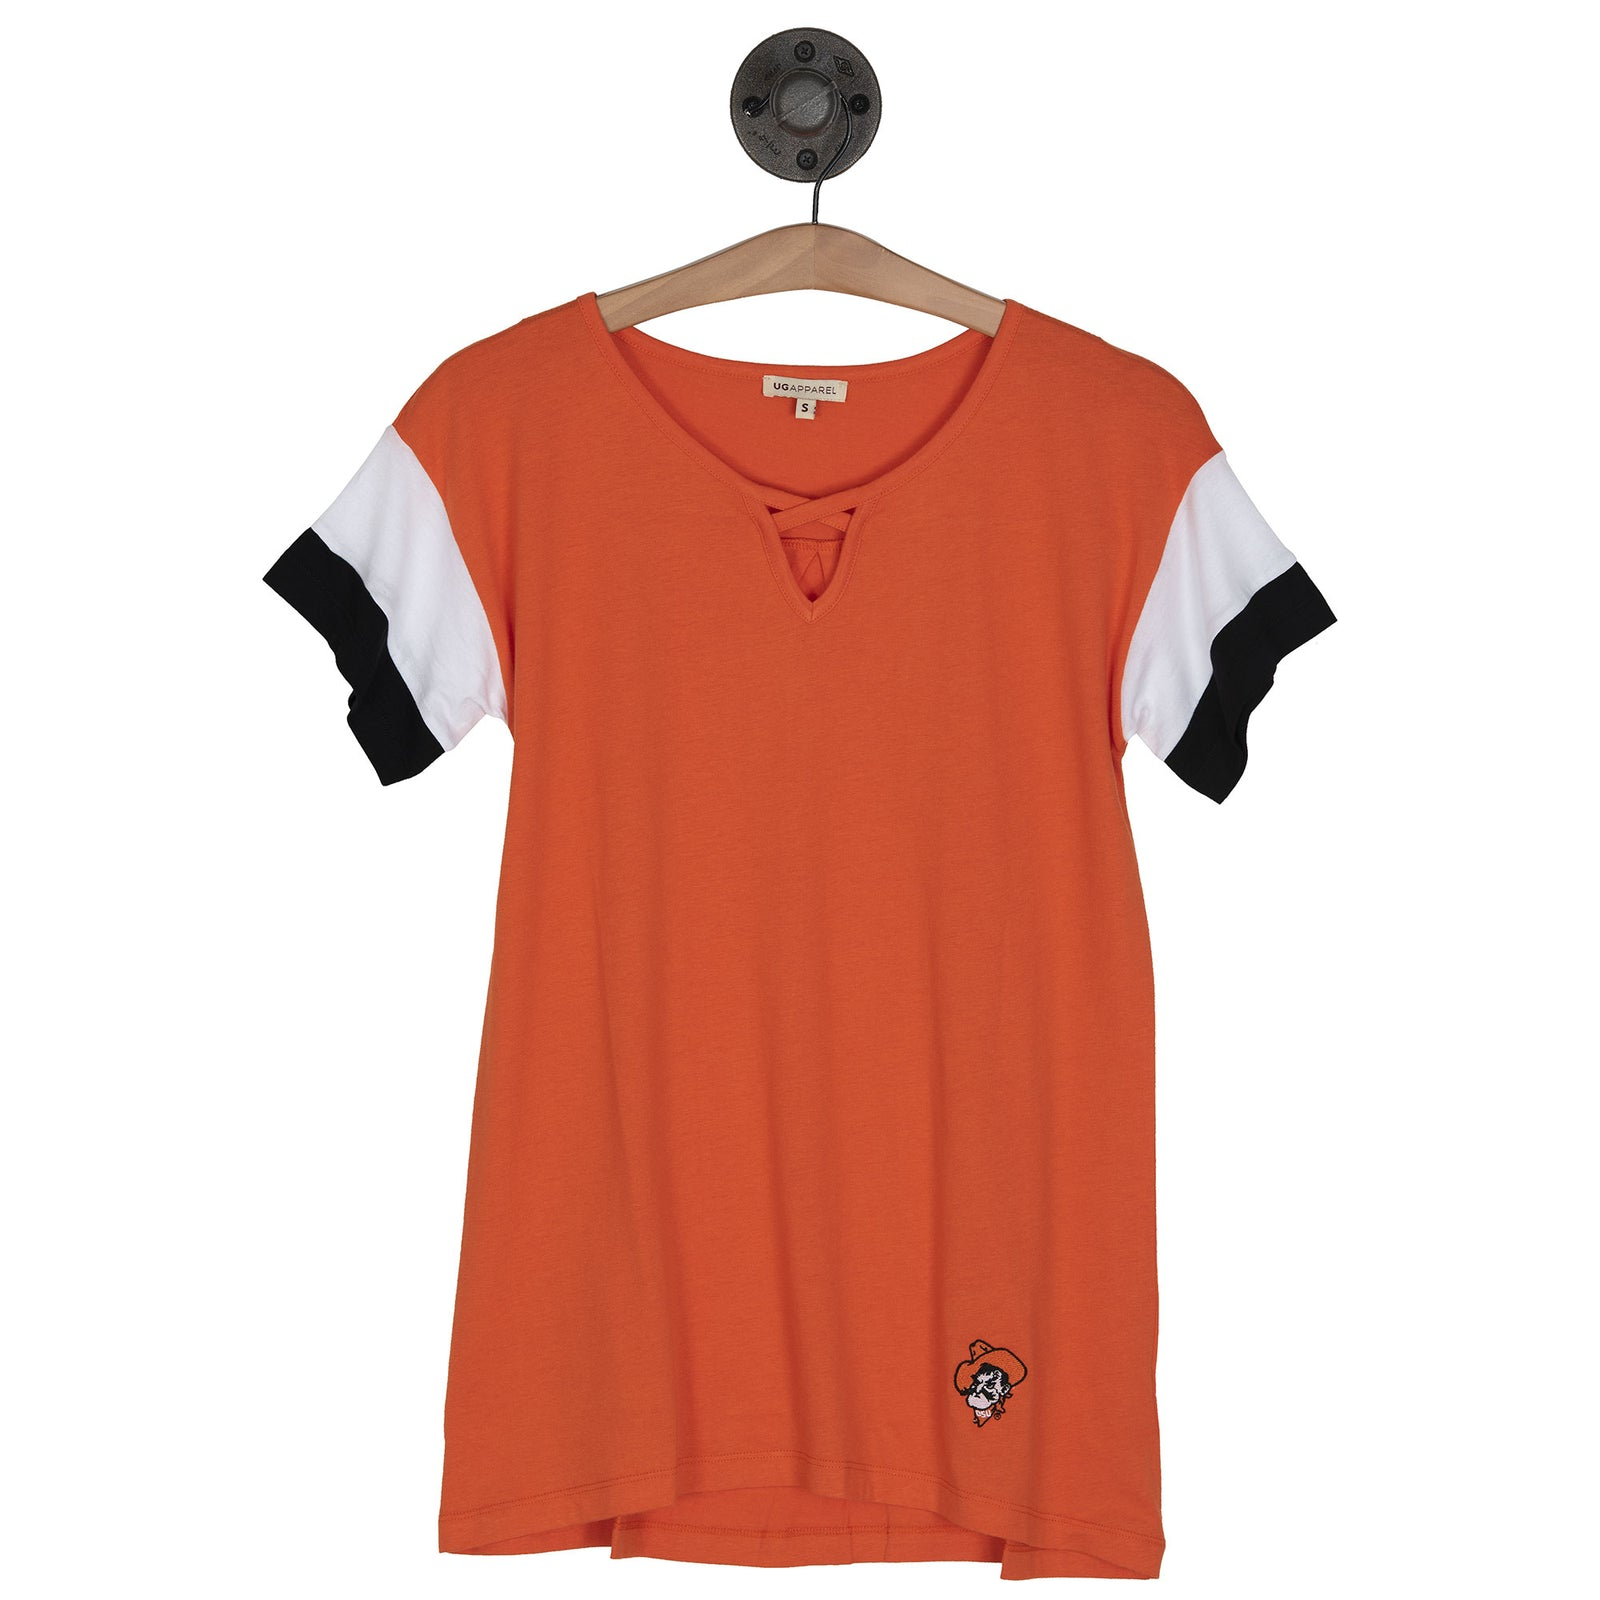 OSU CRISS CROSS BACK TEE - OSUCCBT